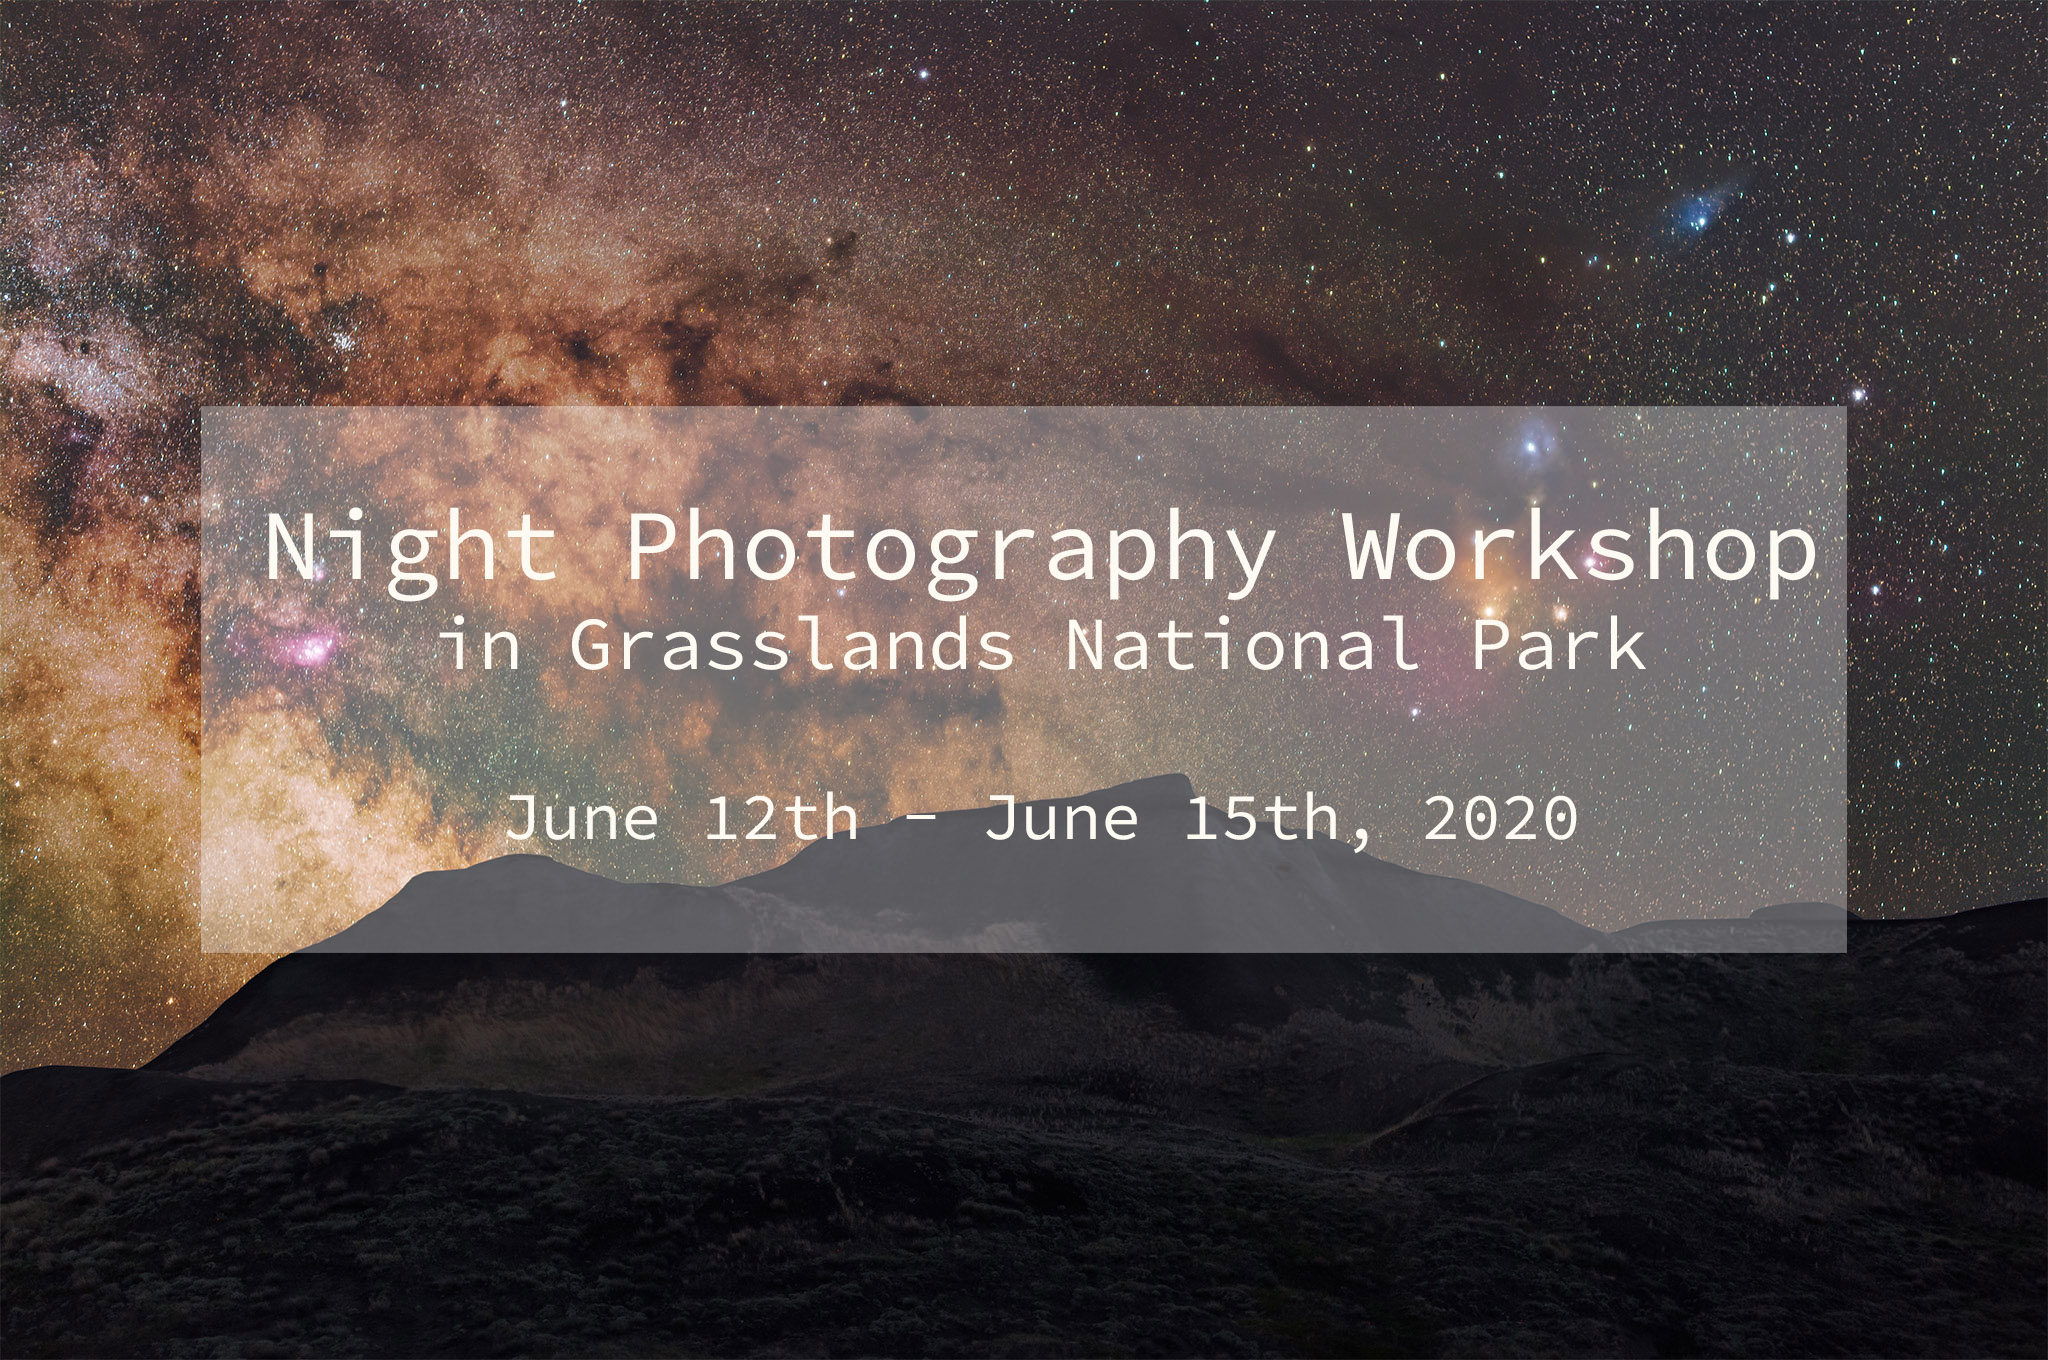 A milky way image for a night photography workshop in Grasslands national Park